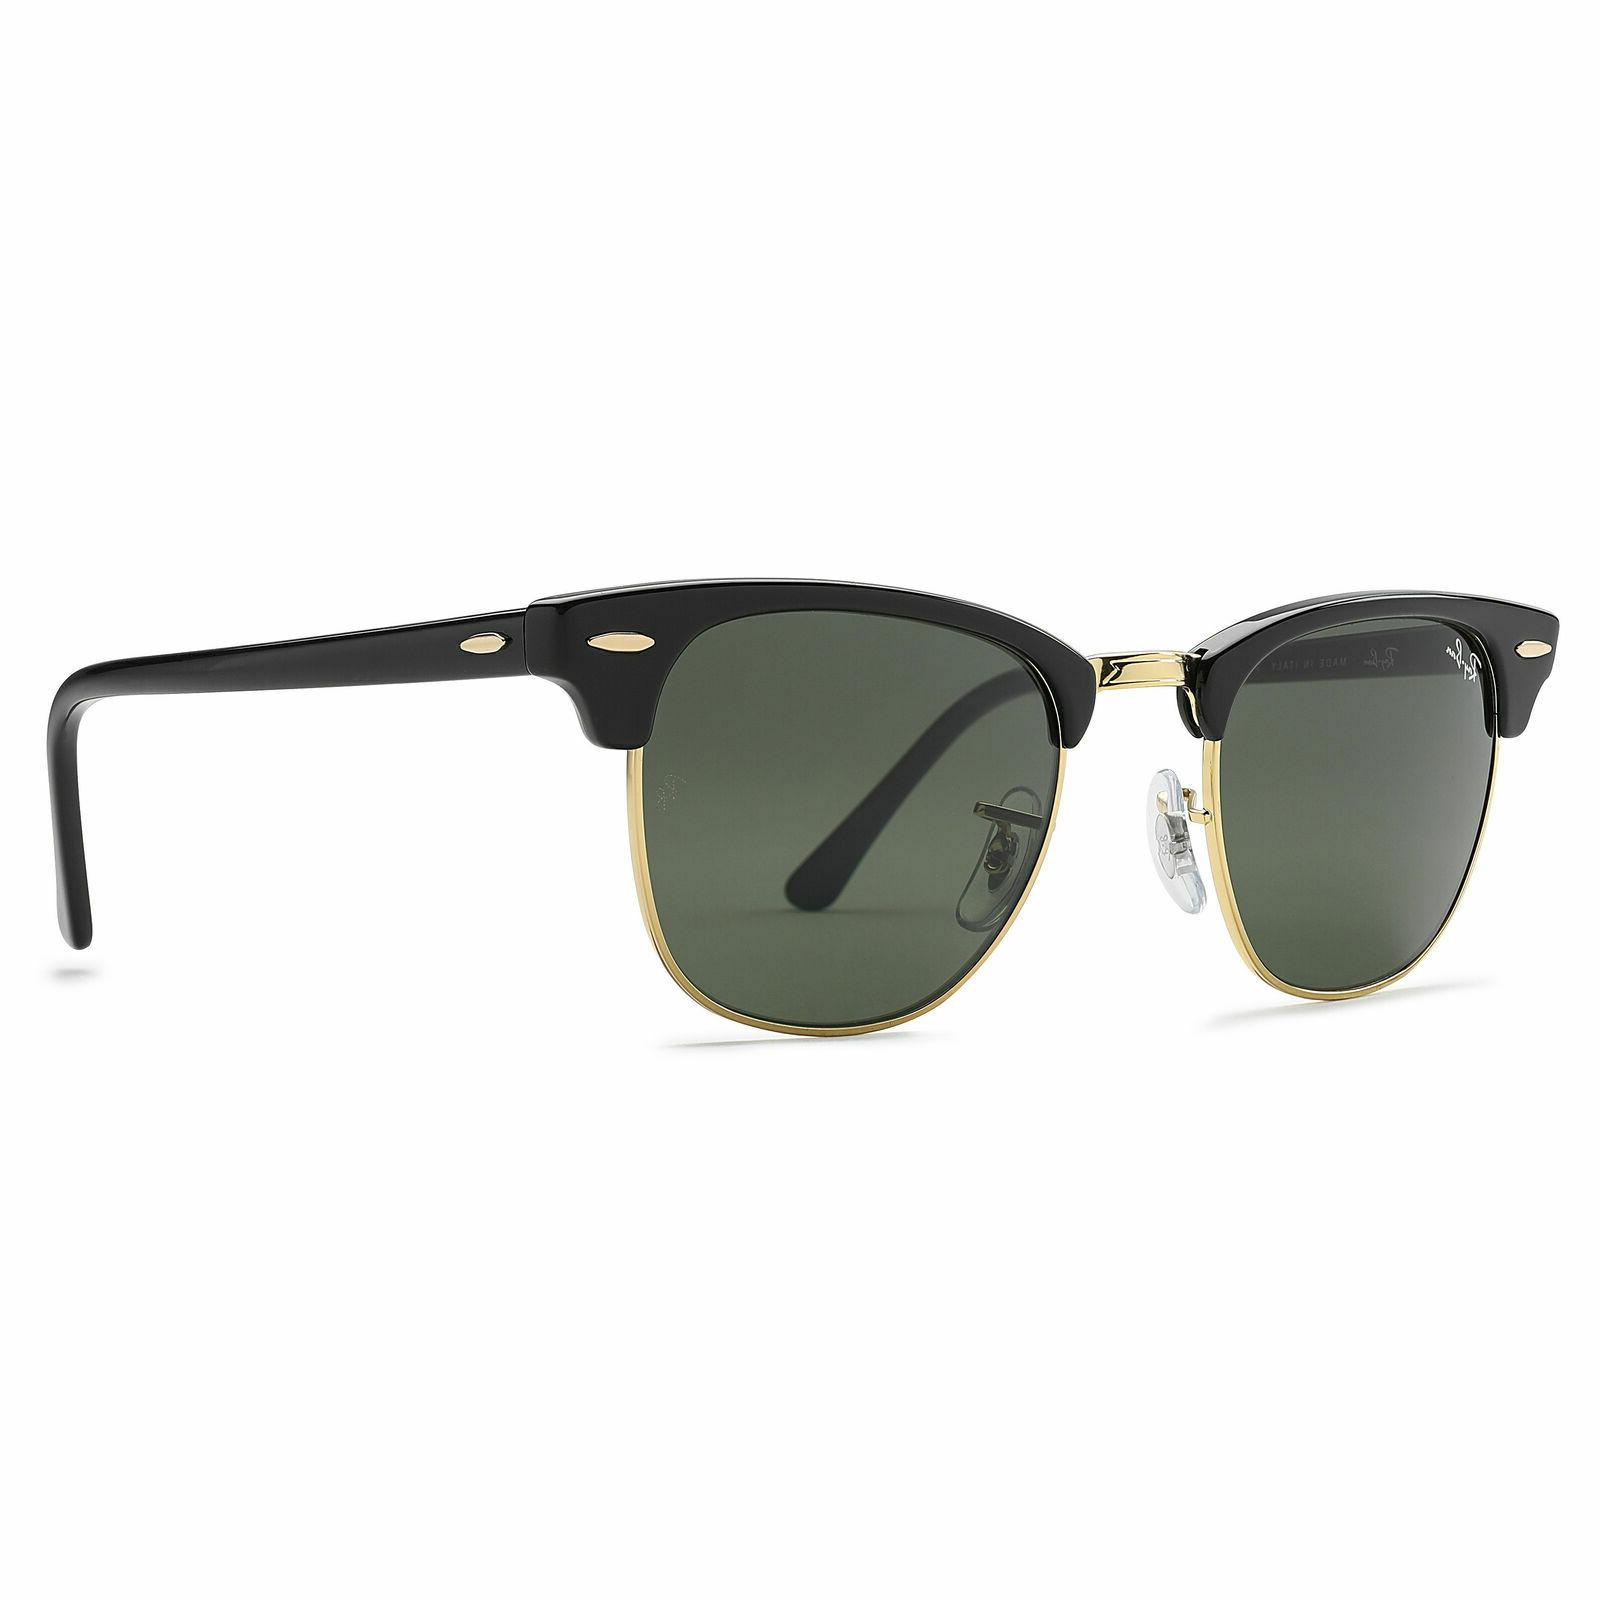 Ray Ban 3016 Sunglasses in color code W0365